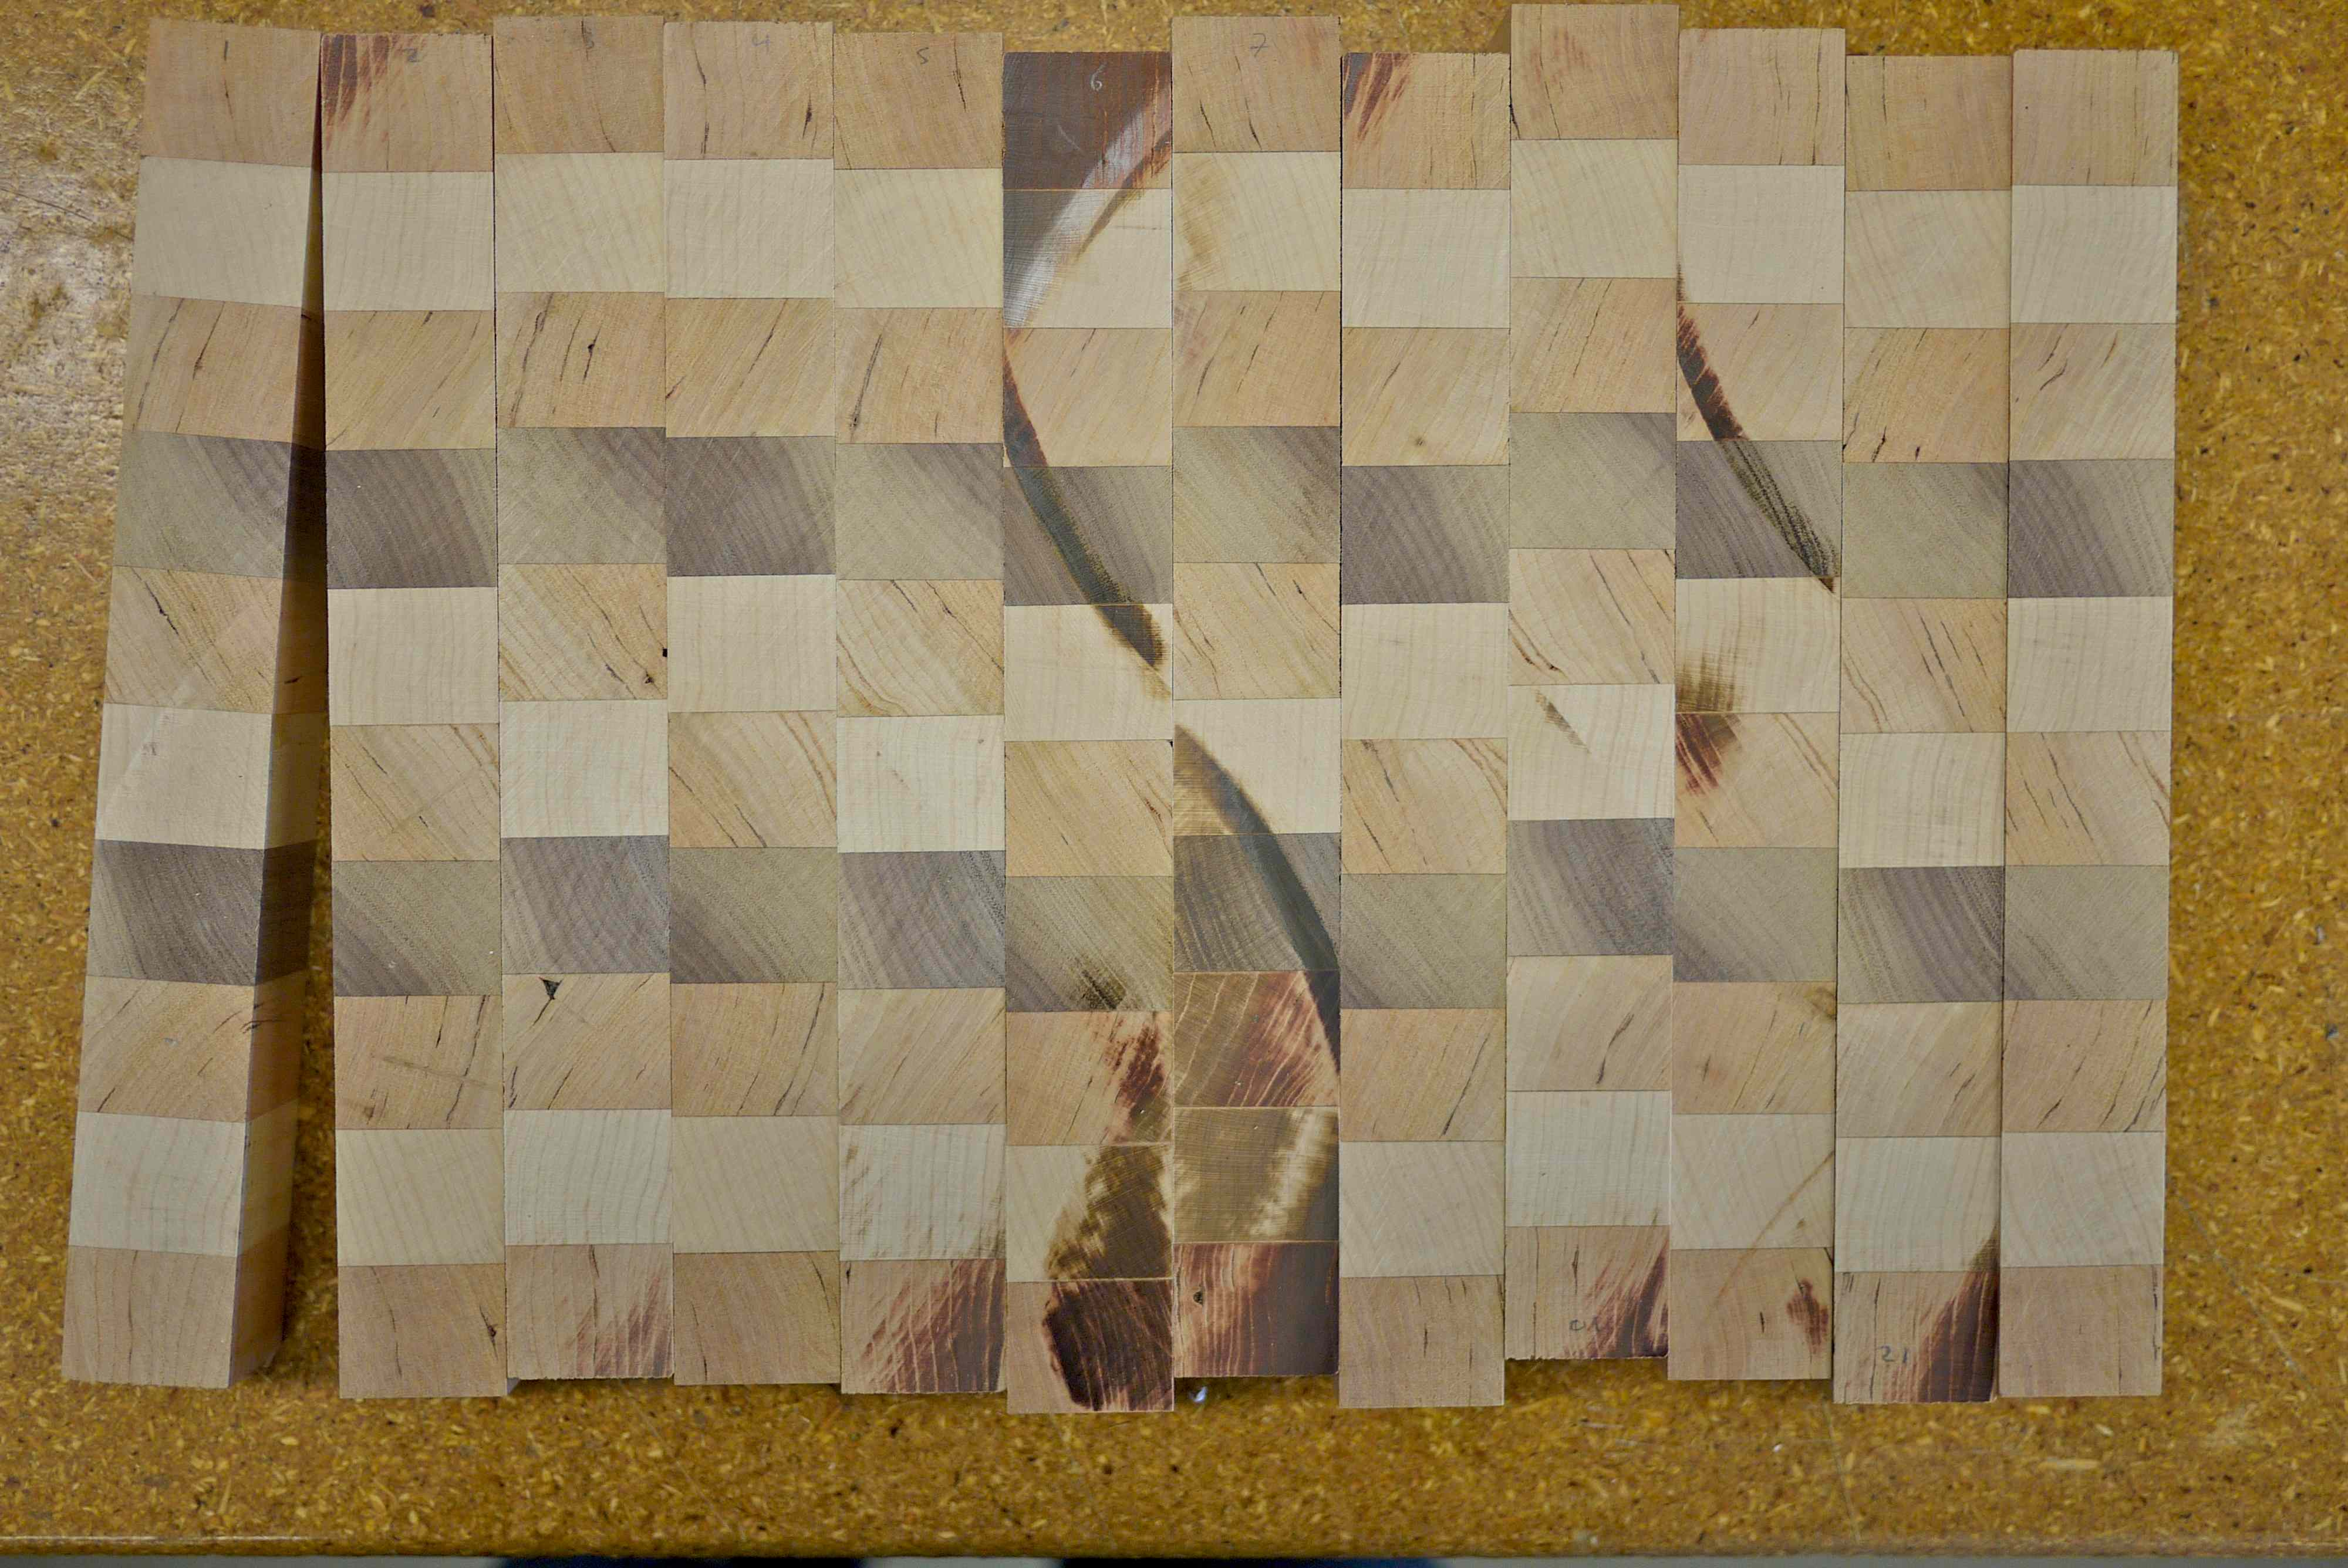 Picture of Exposing the End Grain